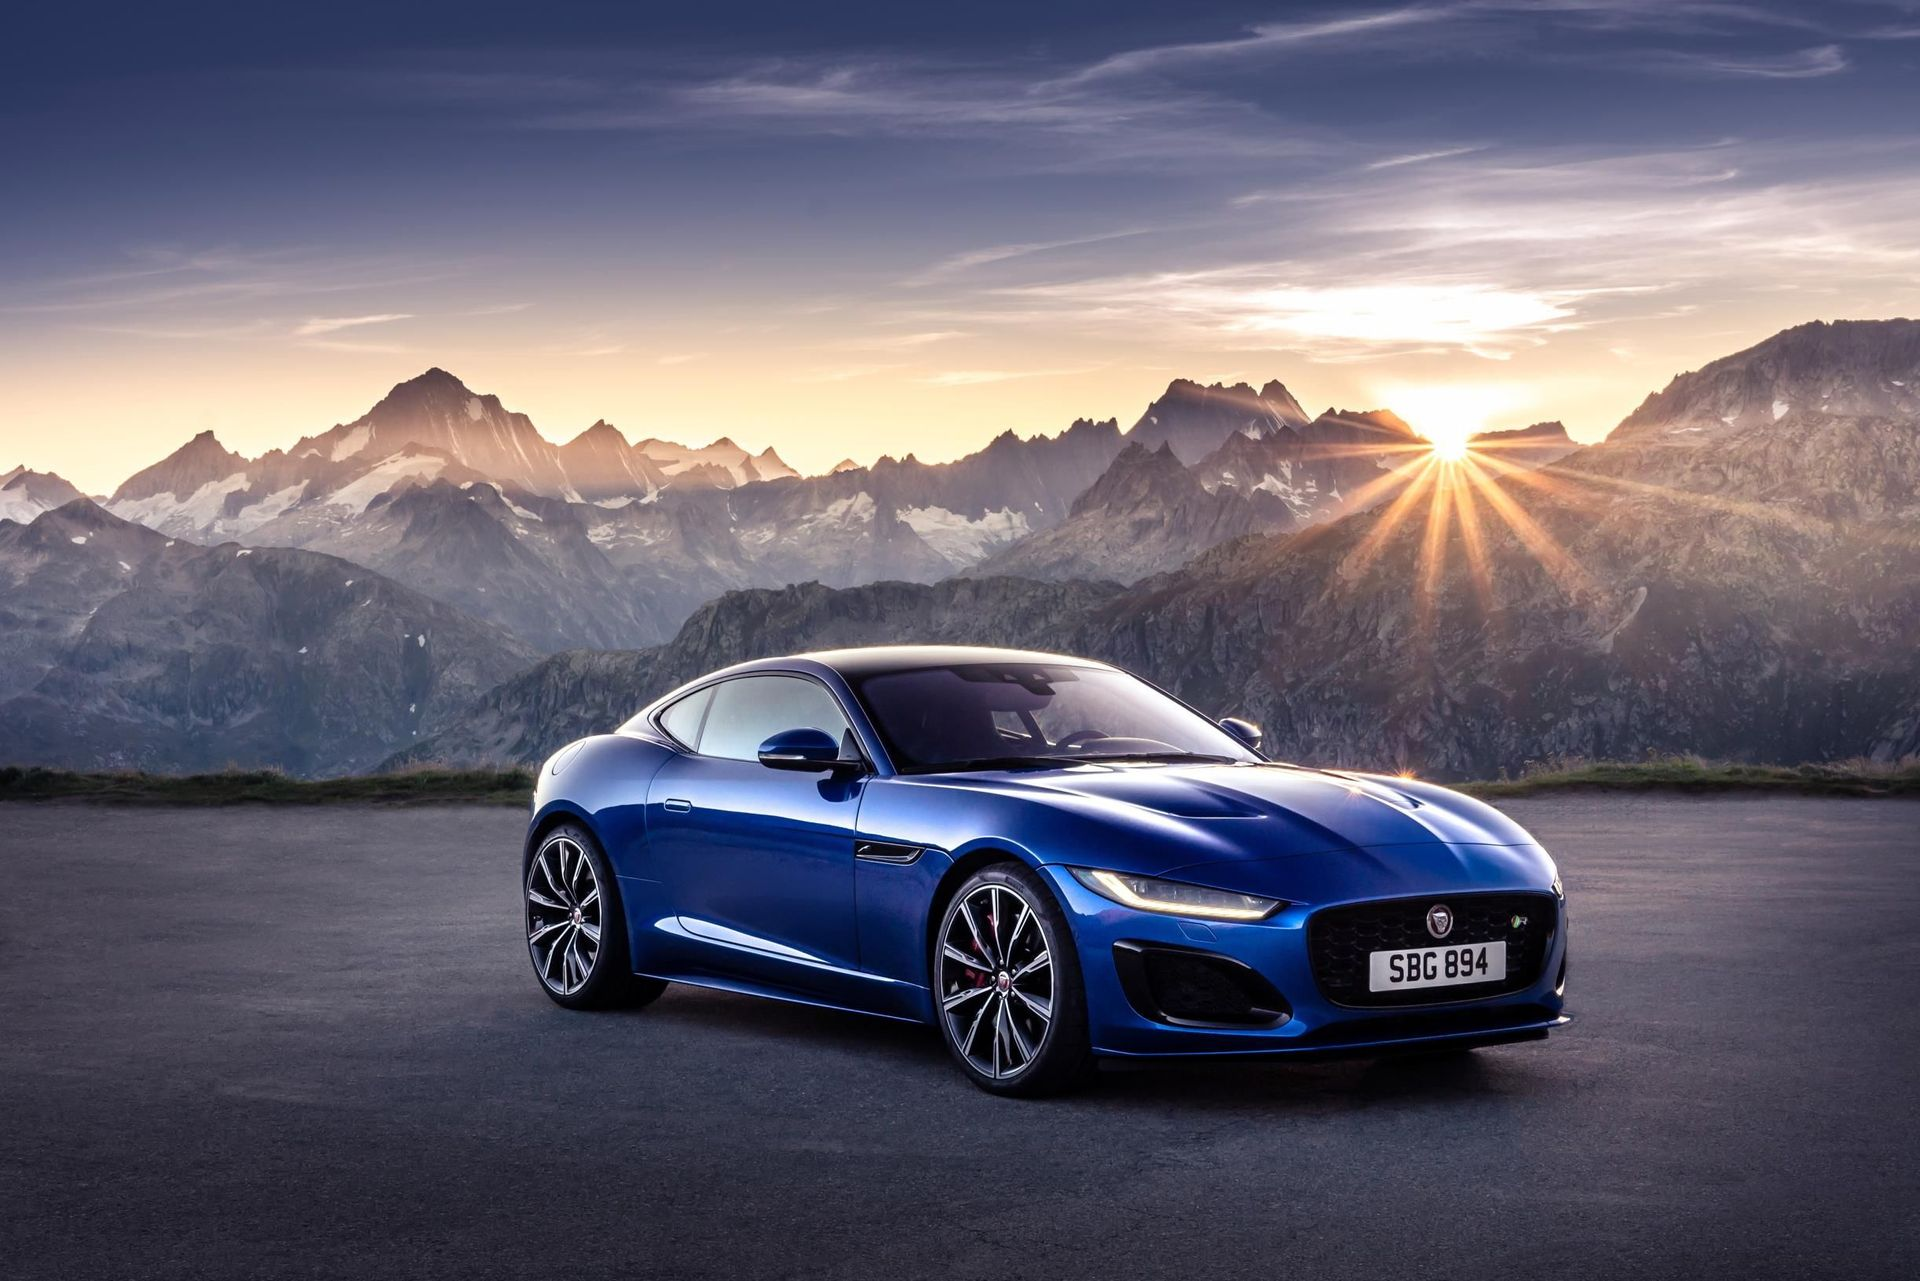 Jaguar F-Type First Edition image